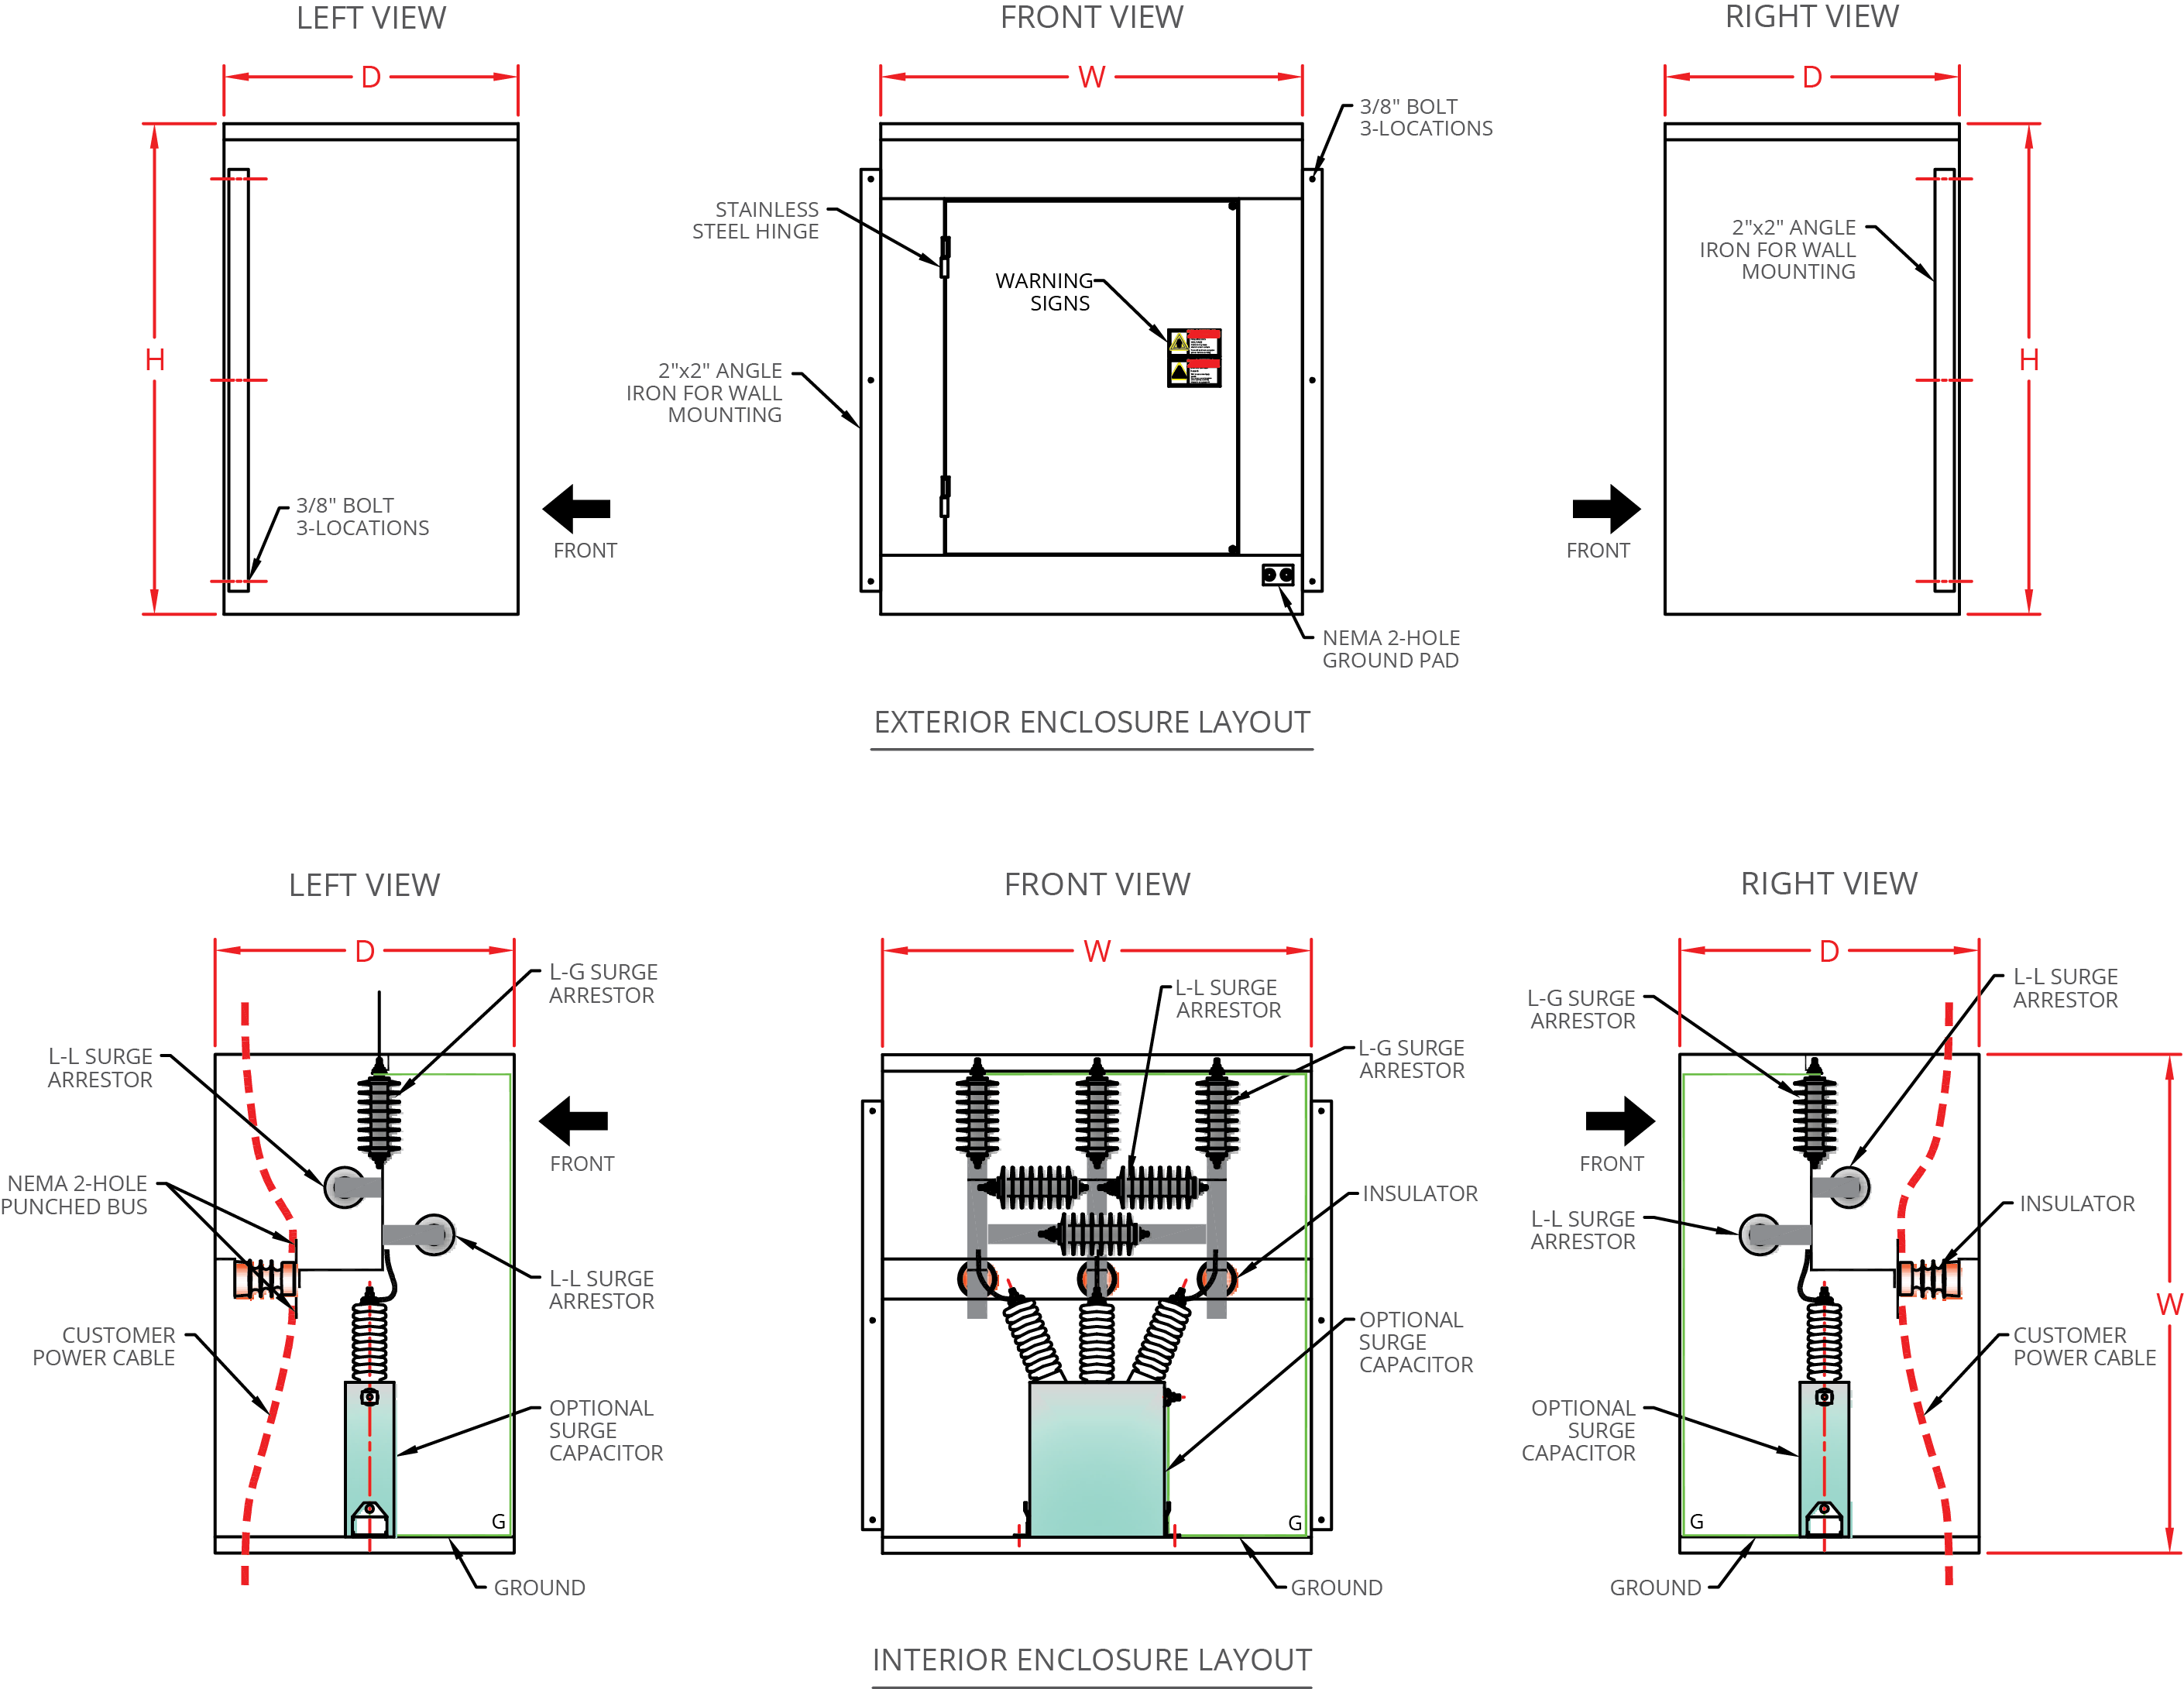 mv tvss without fuses tvss wiring diagram single phase motor wiring diagrams \u2022 wiring surge arrester wiring diagram at aneh.co